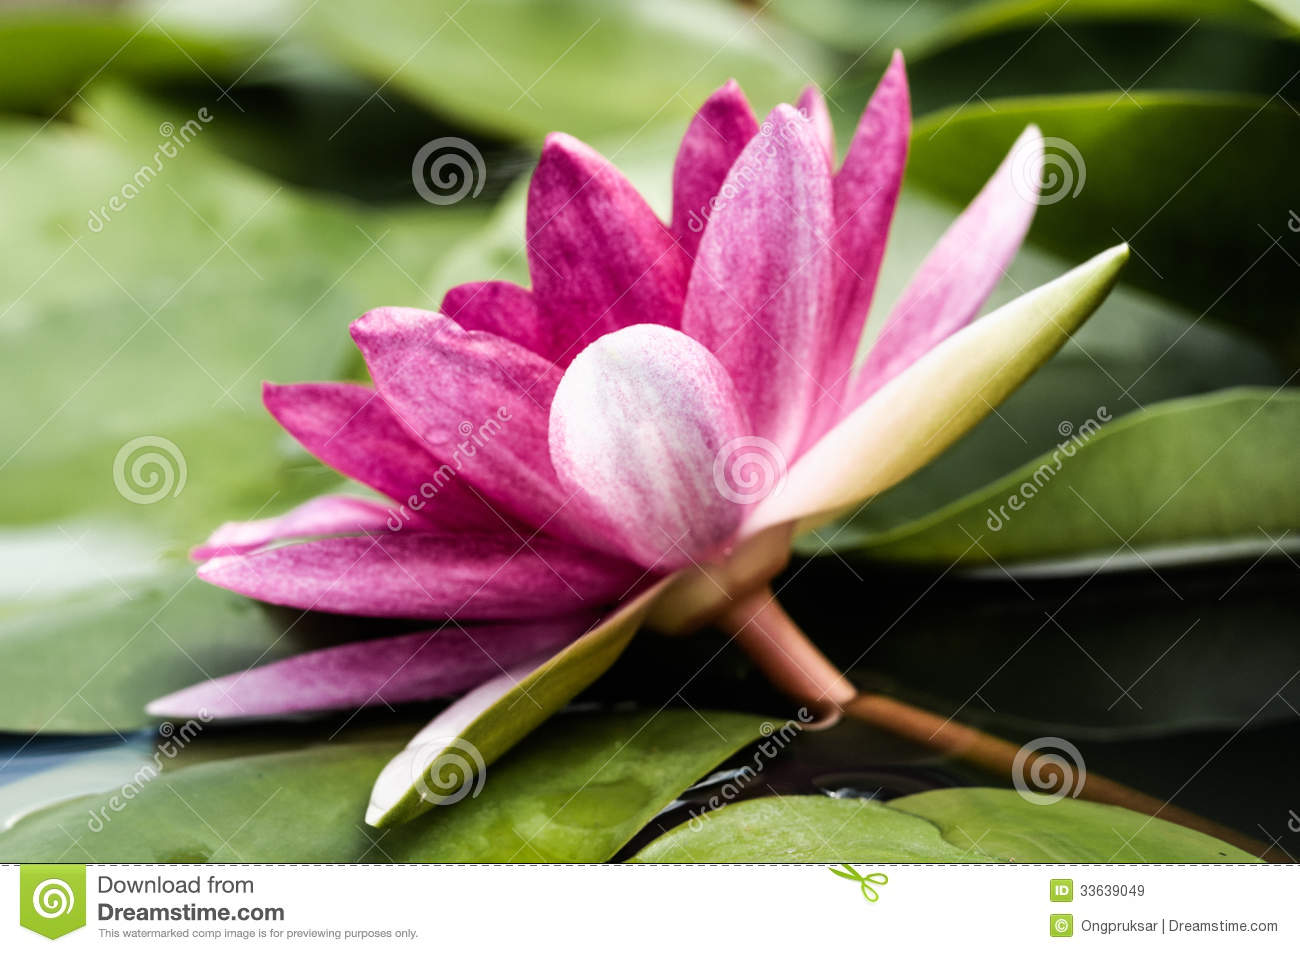 The lotus flower buddhism image collections fresh lotus flowers lotus flower buddhism choice image flower wallpaper hd izmirmasajfo